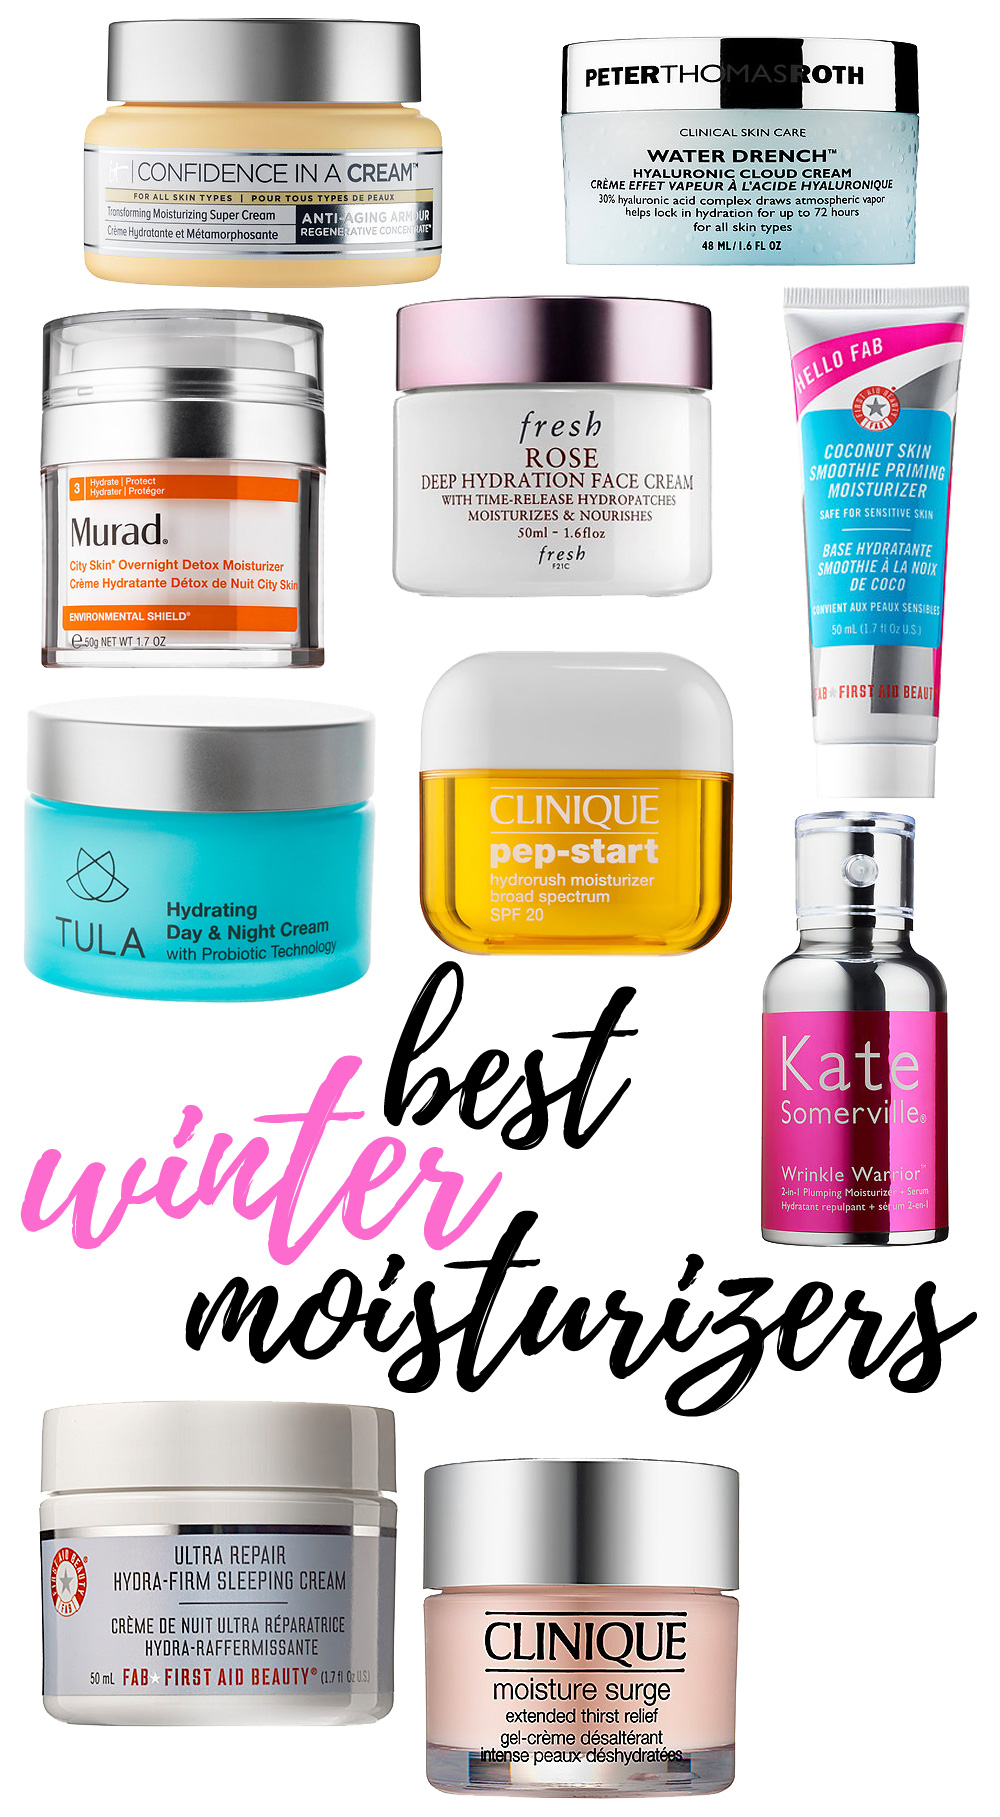 Top 10 Winter Moisturizers